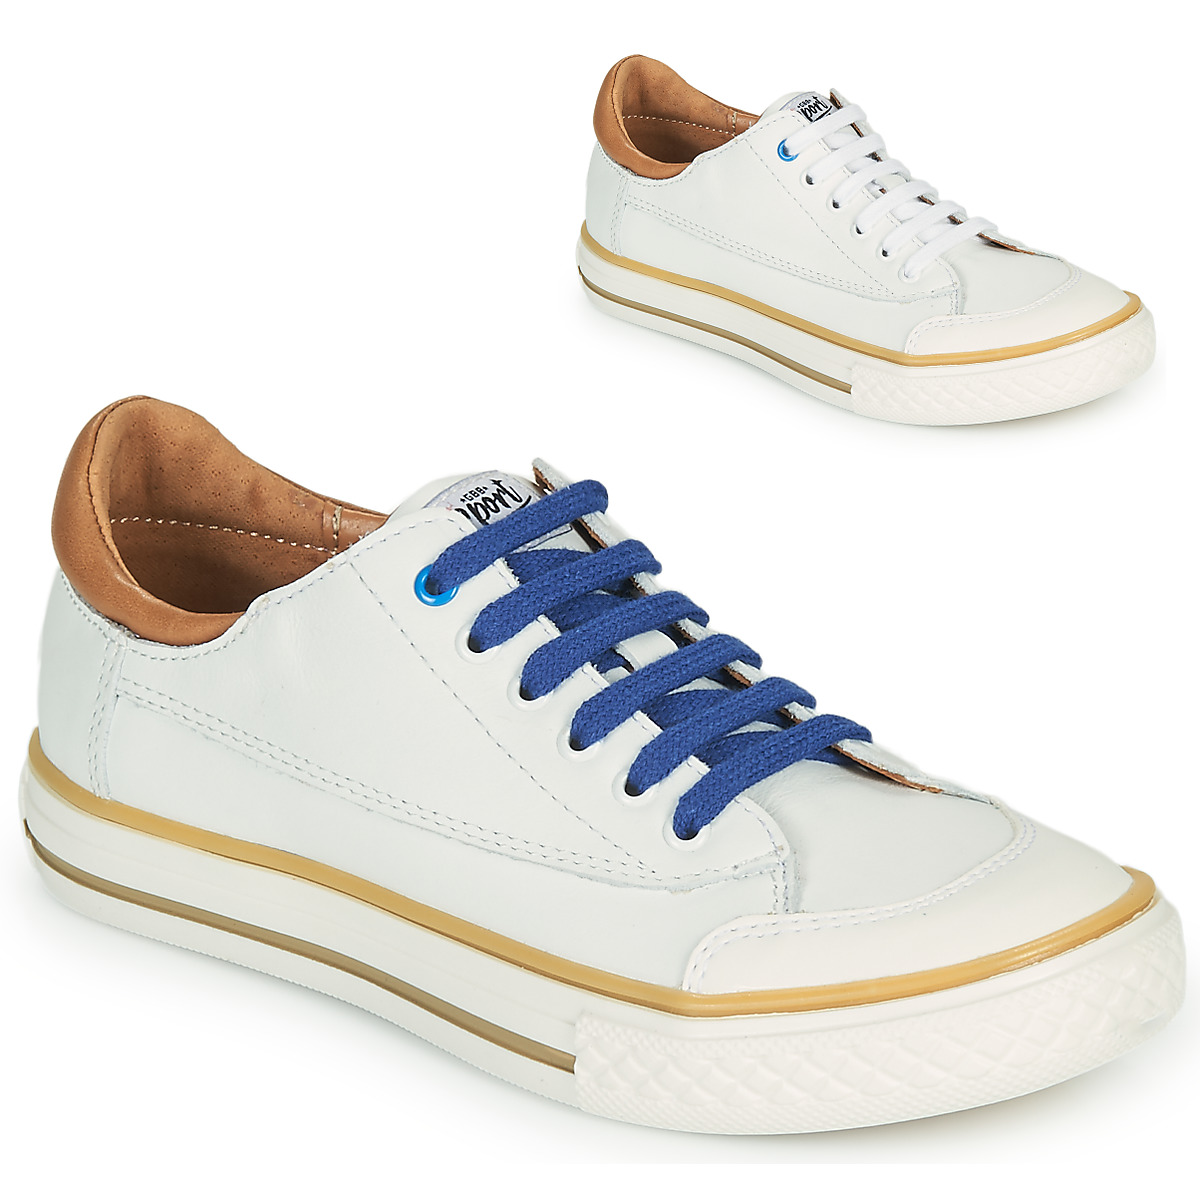 Hommes Ados Playstation Pantoufles Lacet Chaussures Taille UK 7 8 9 10 11 12 Mules